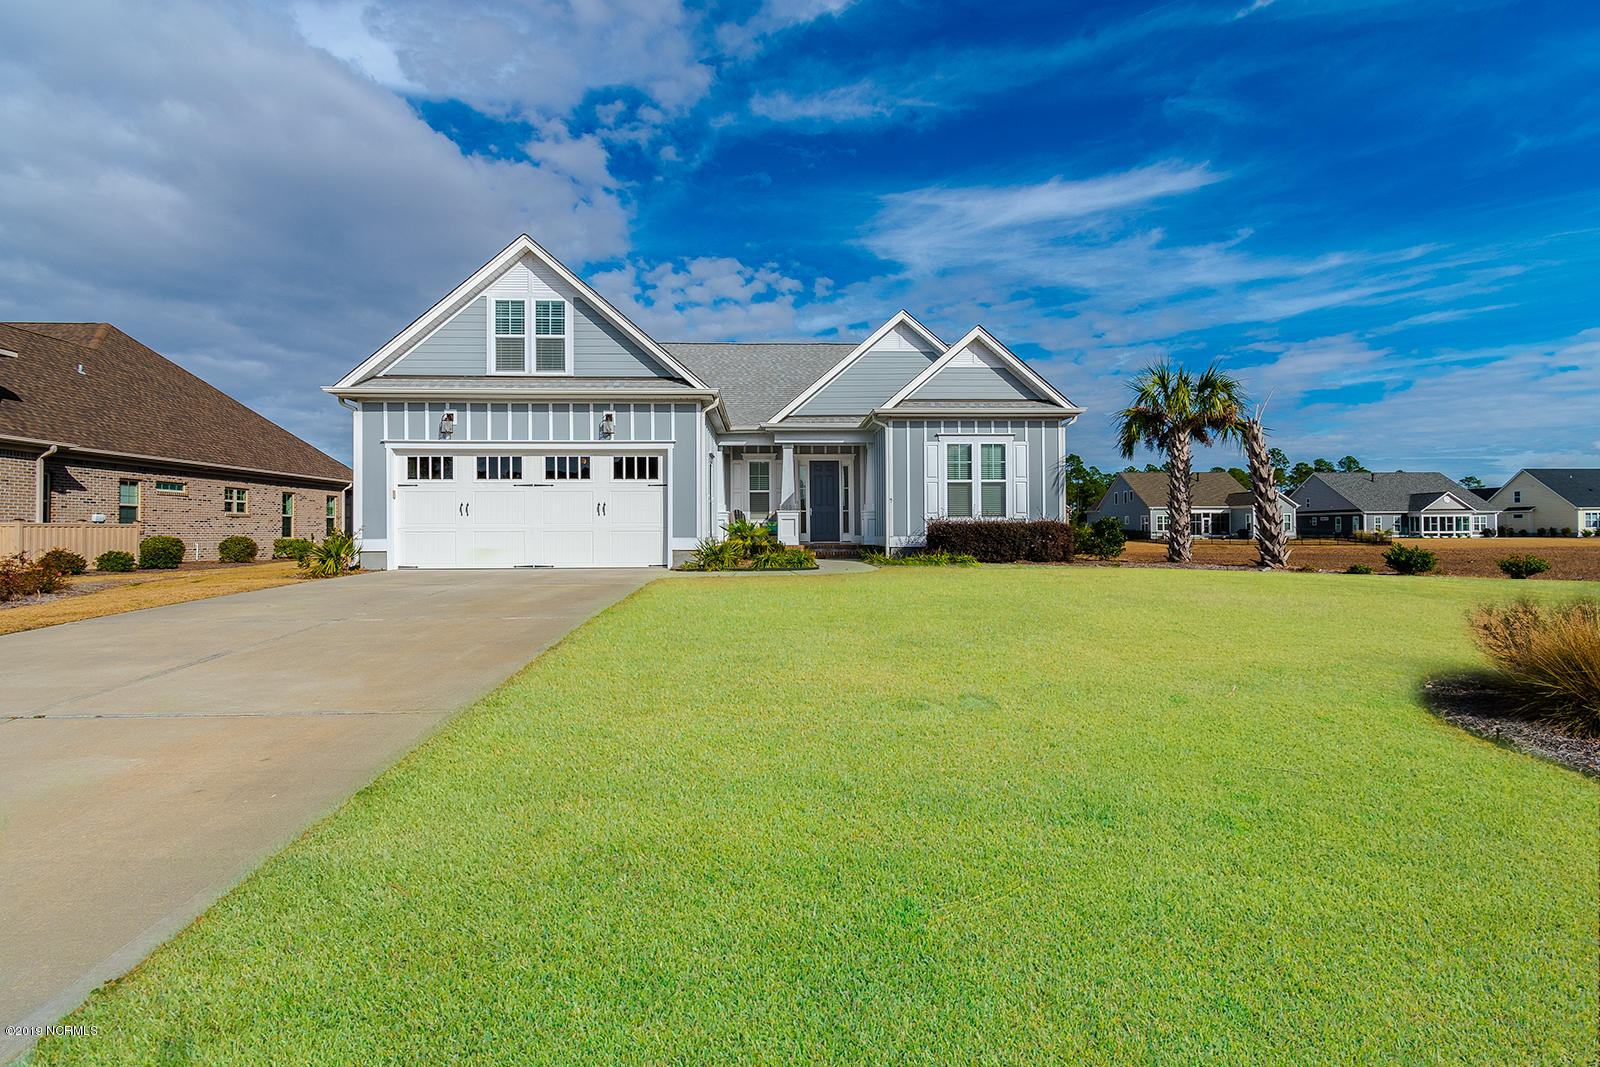 8456 N Shoreside Way Leland, NC 28451